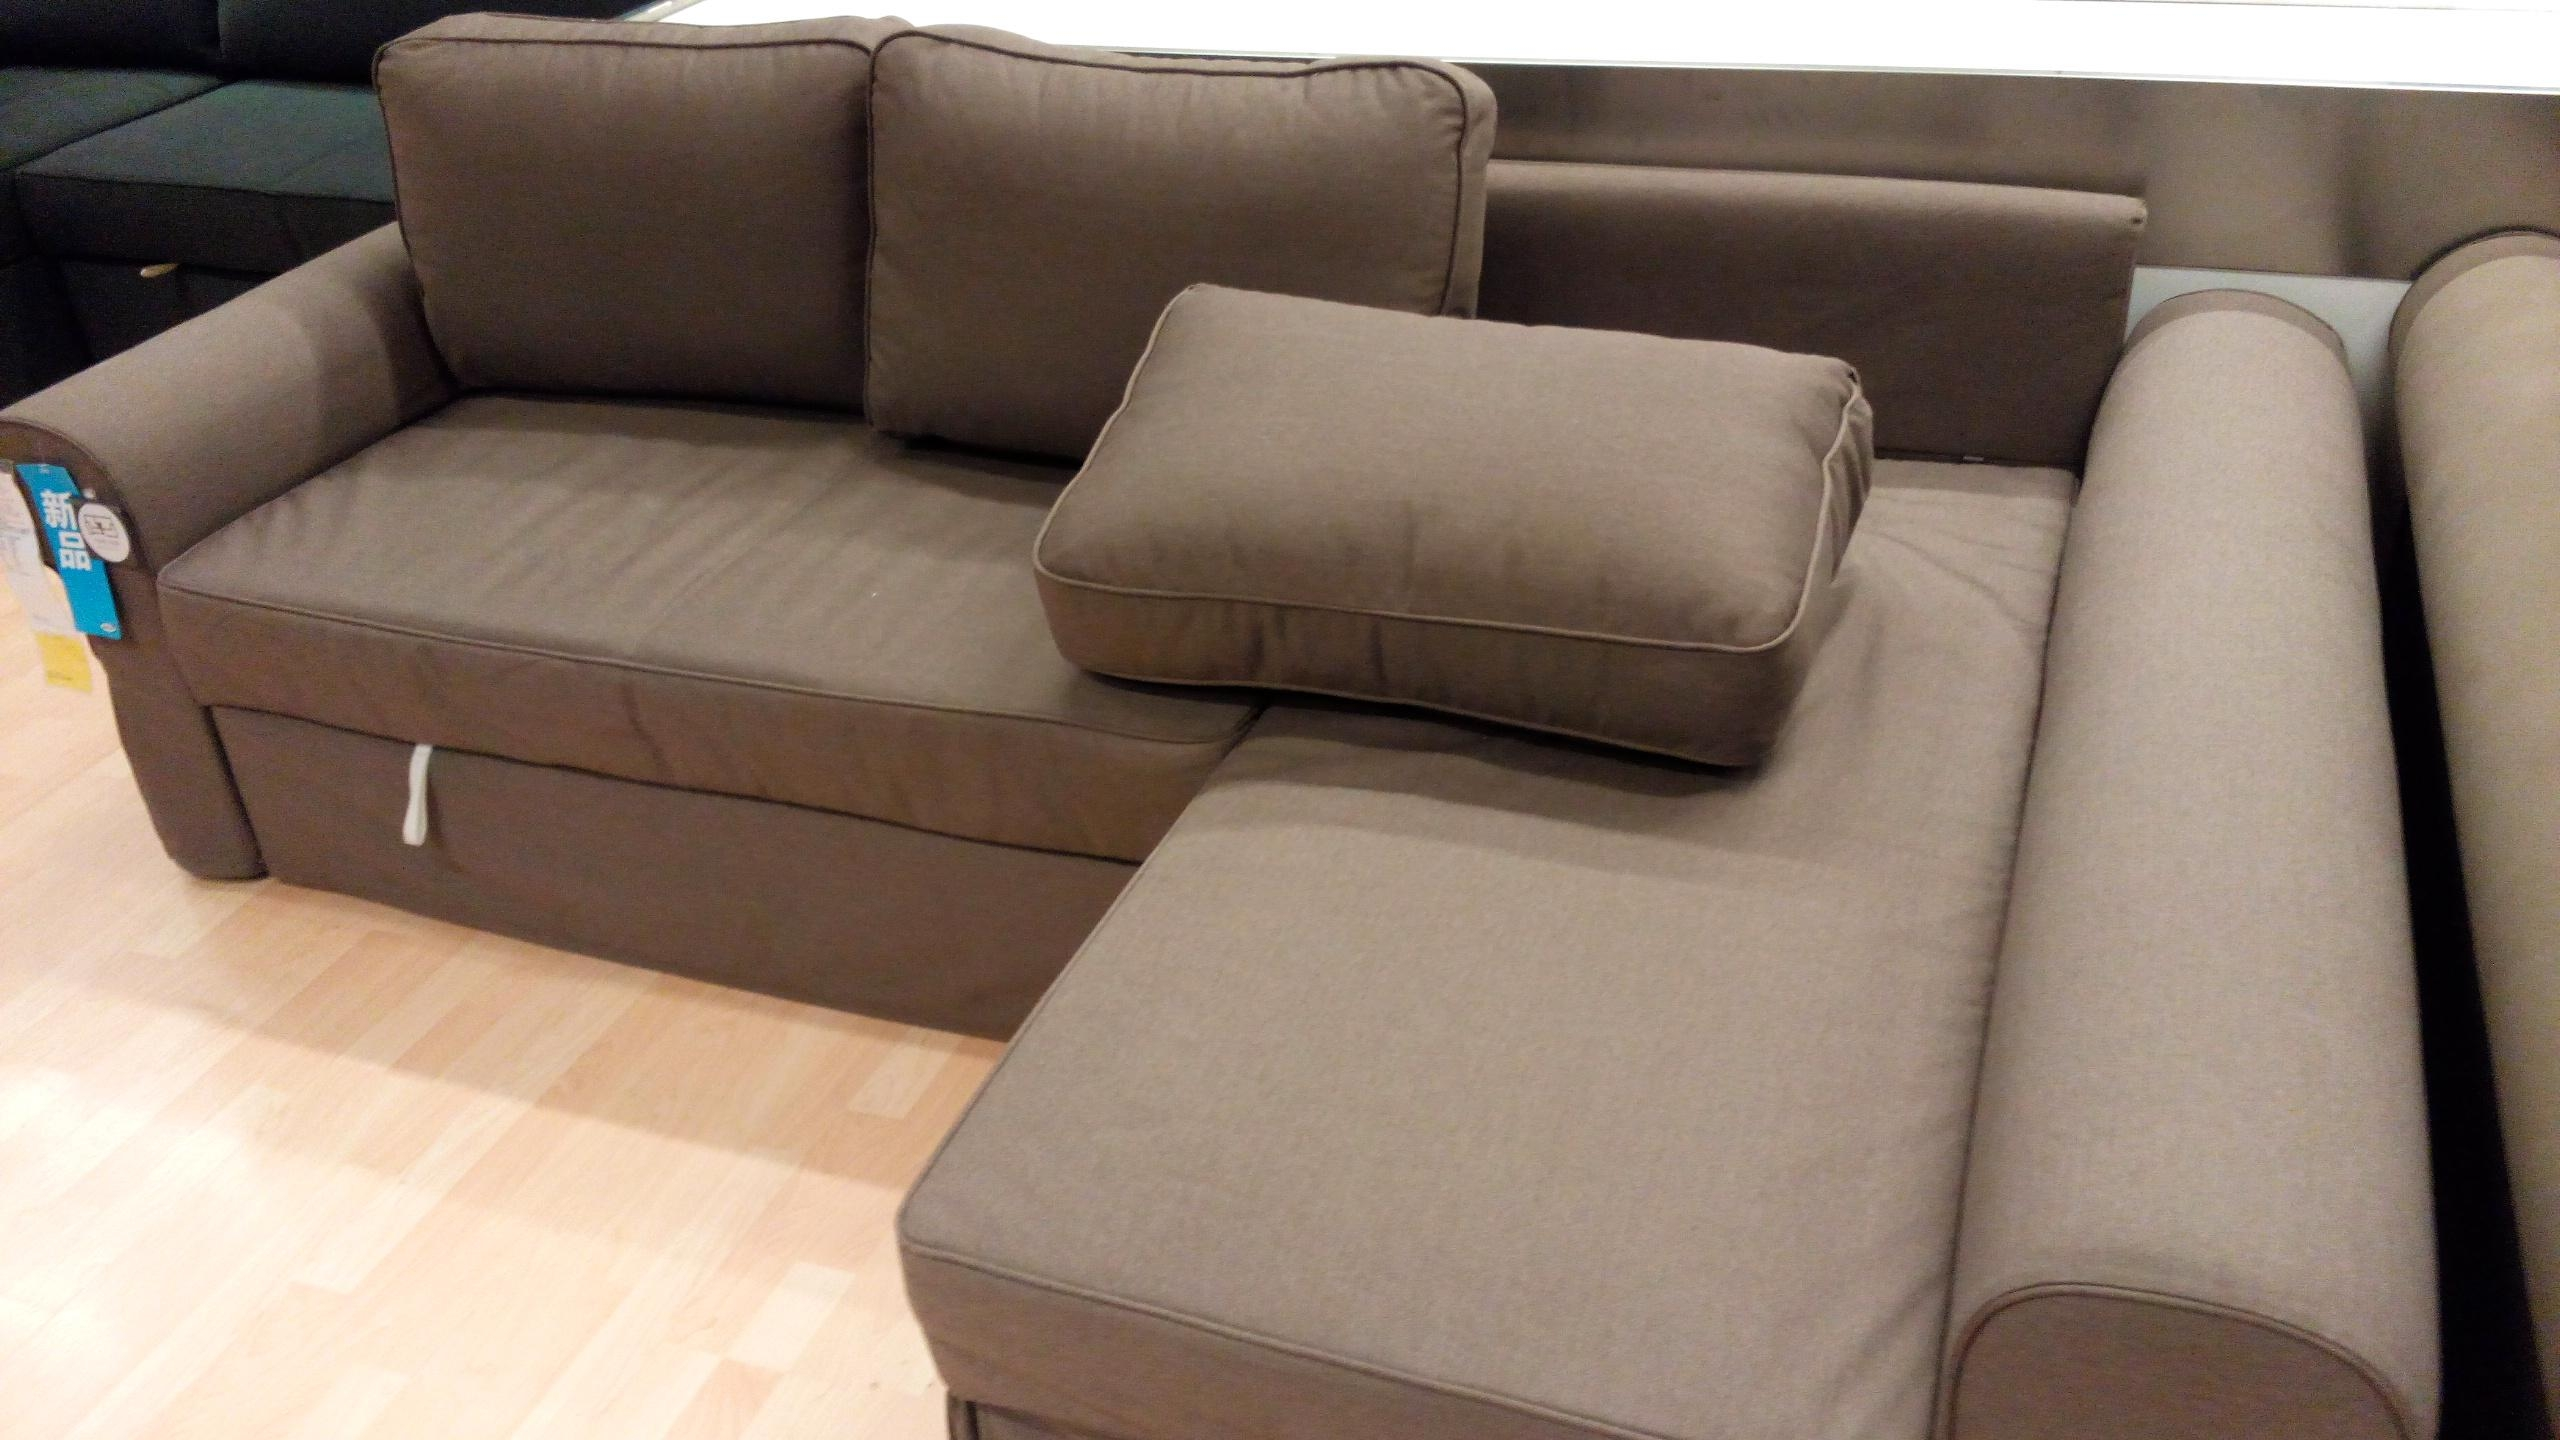 Ikea Vilasund And Backabro Review – Return Of The Sofa Bed Clones! Regarding Sofa Beds With Chaise Lounge (Image 9 of 20)